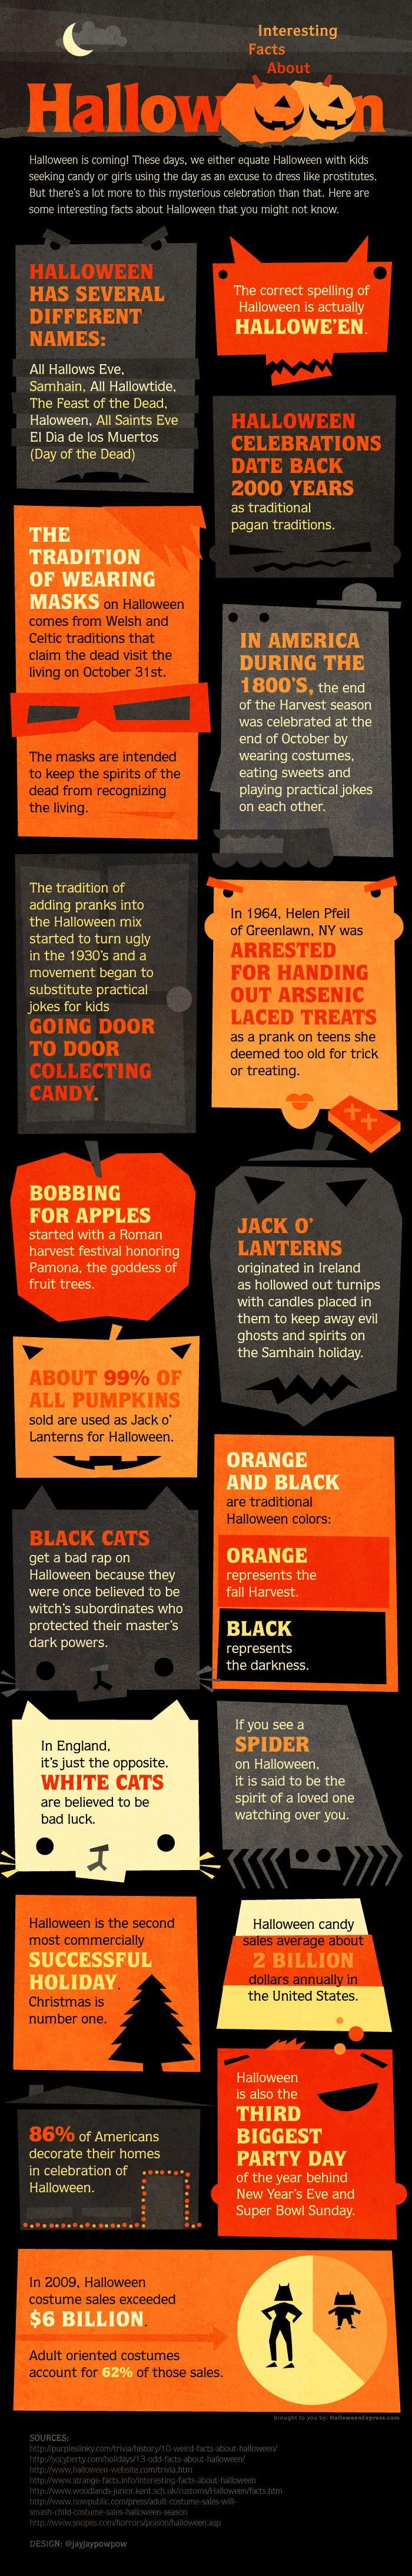 Facts about Halloween!